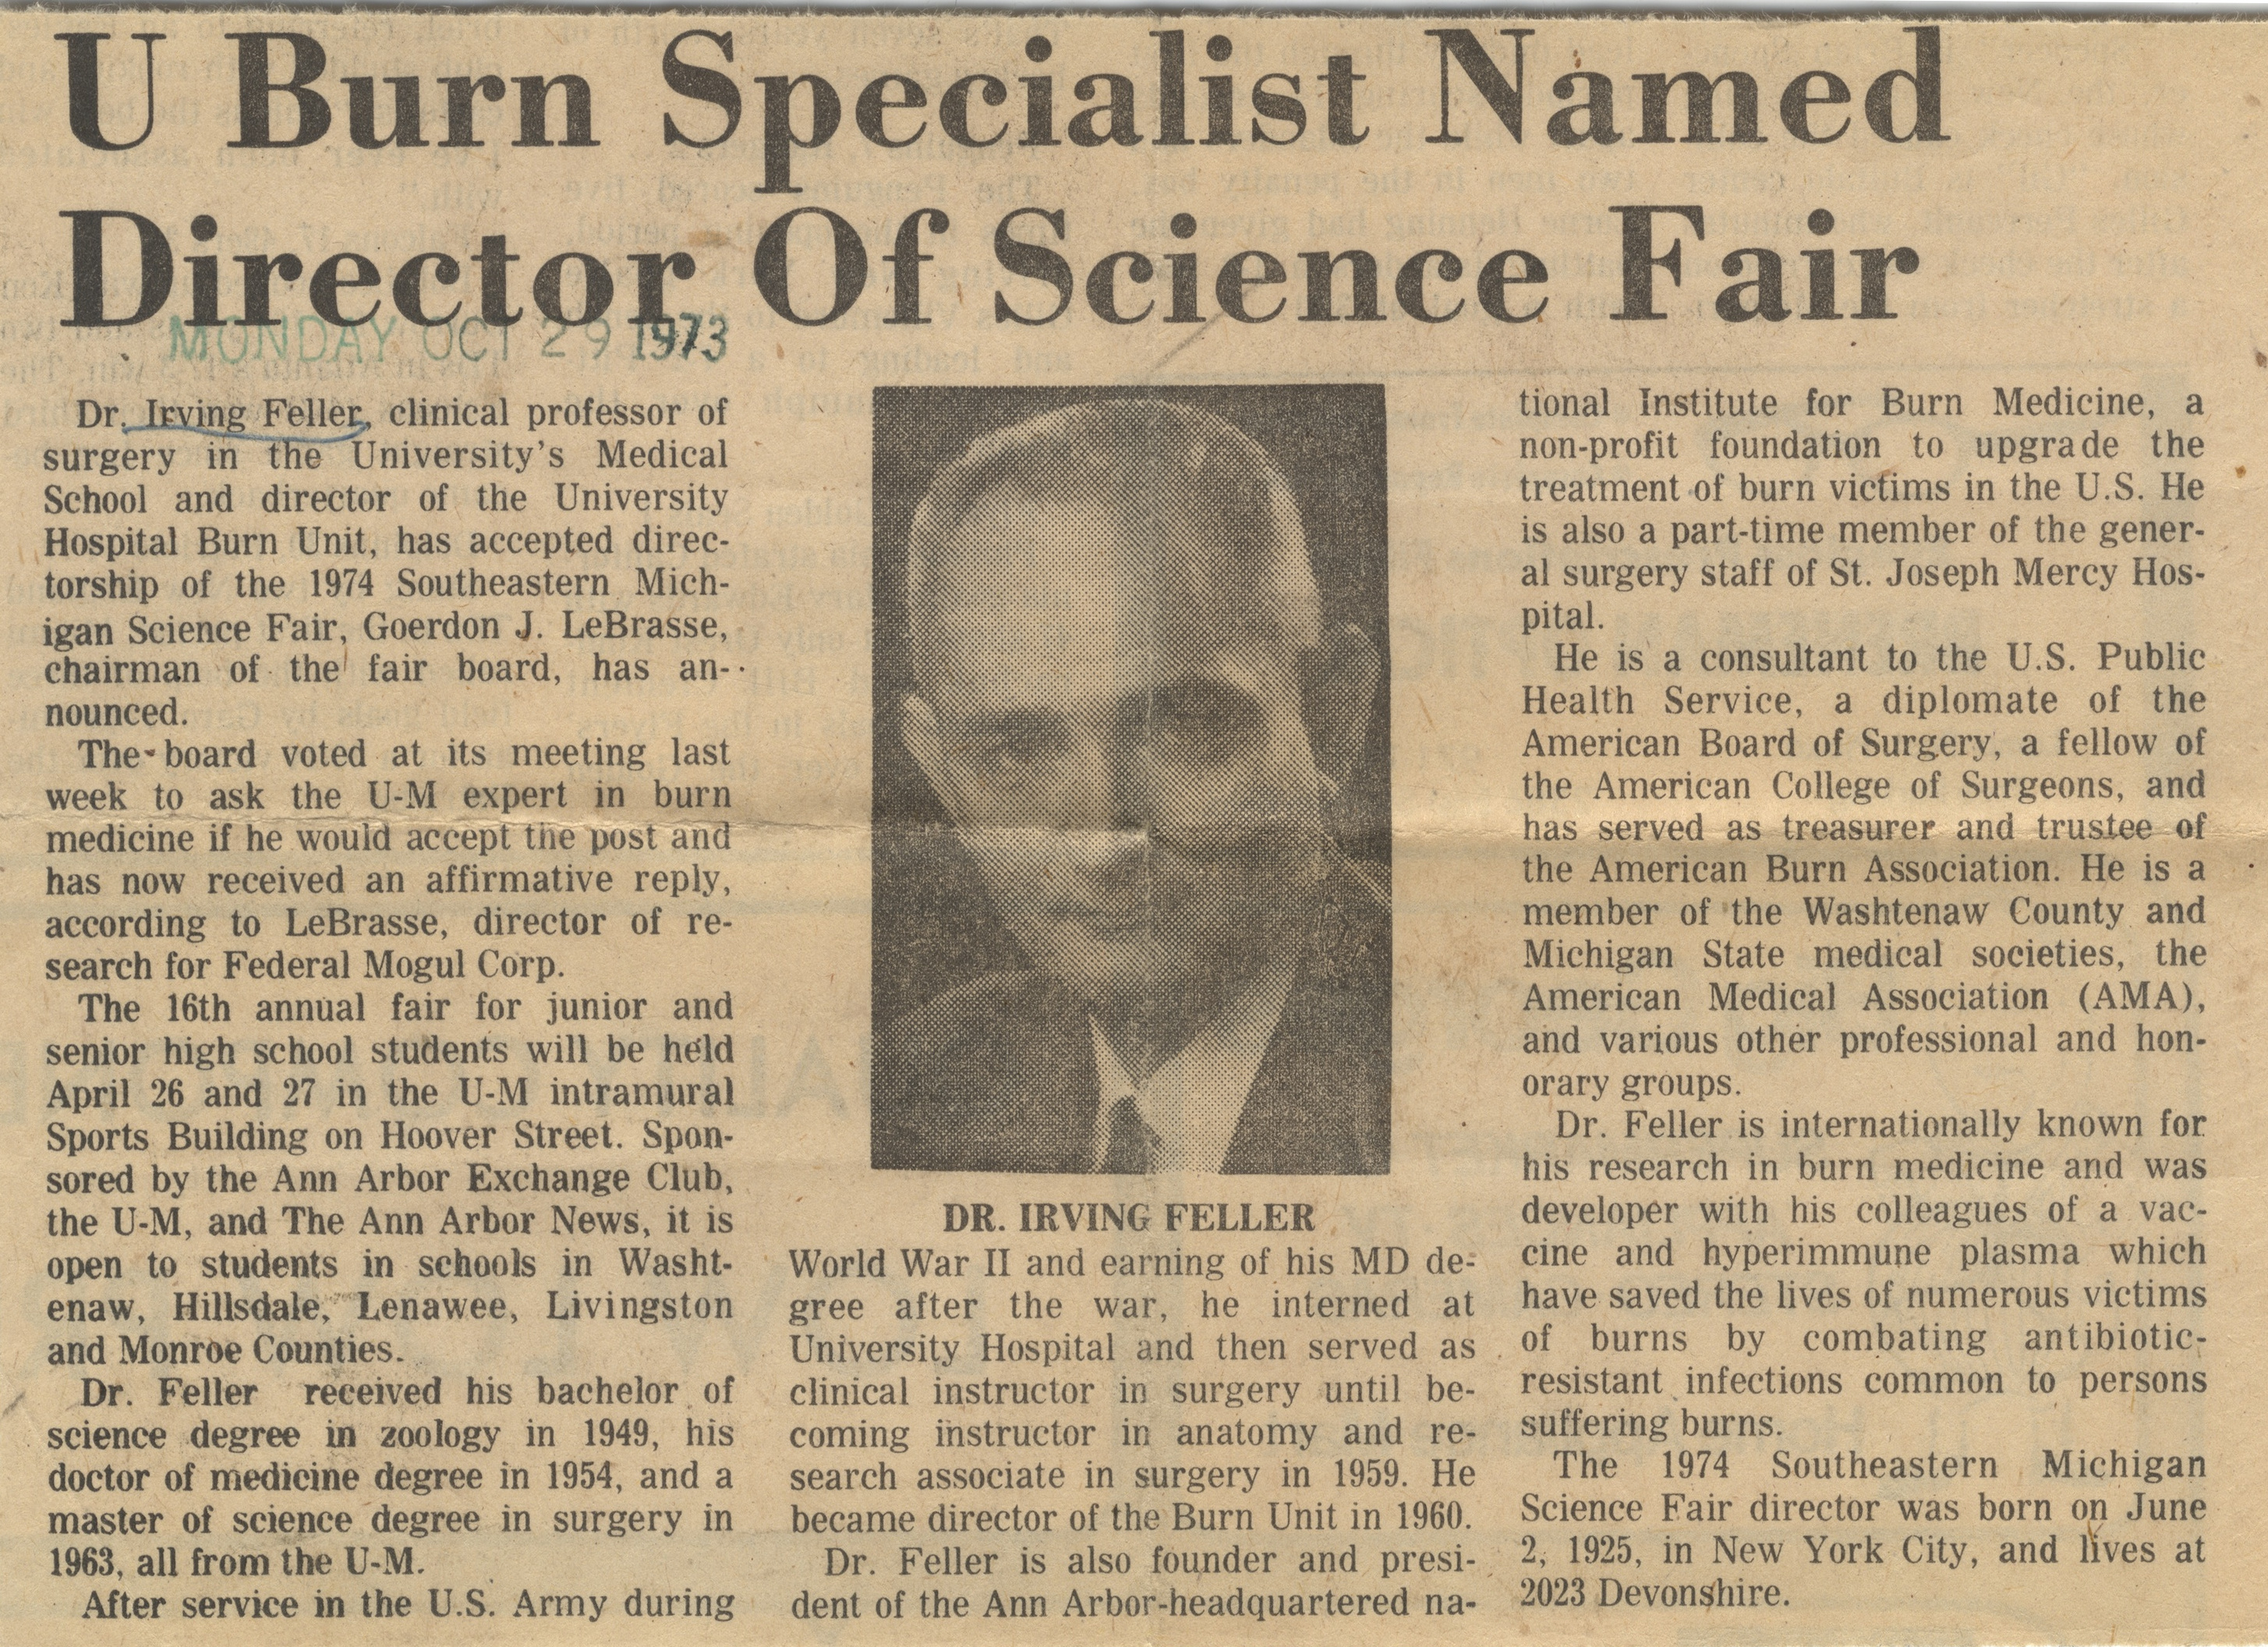 U Burn Specialist Named Director Of Science Fair image